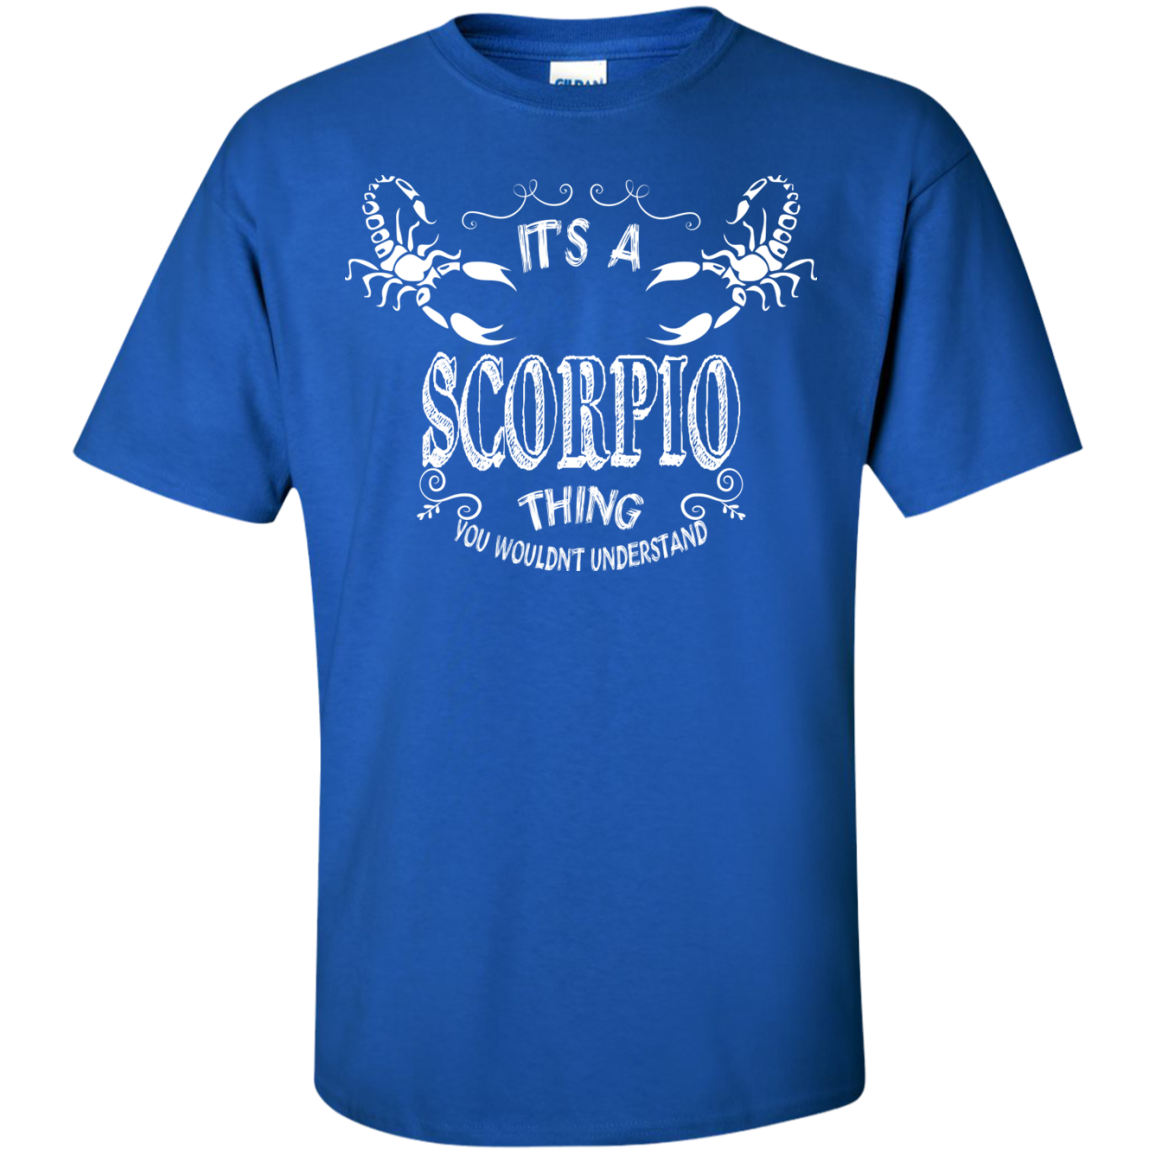 IT'S A SCORPIO THING...YOU WOULDN'T UNDERSTAND - ZODIAC T SHIRT - The Sun Cat